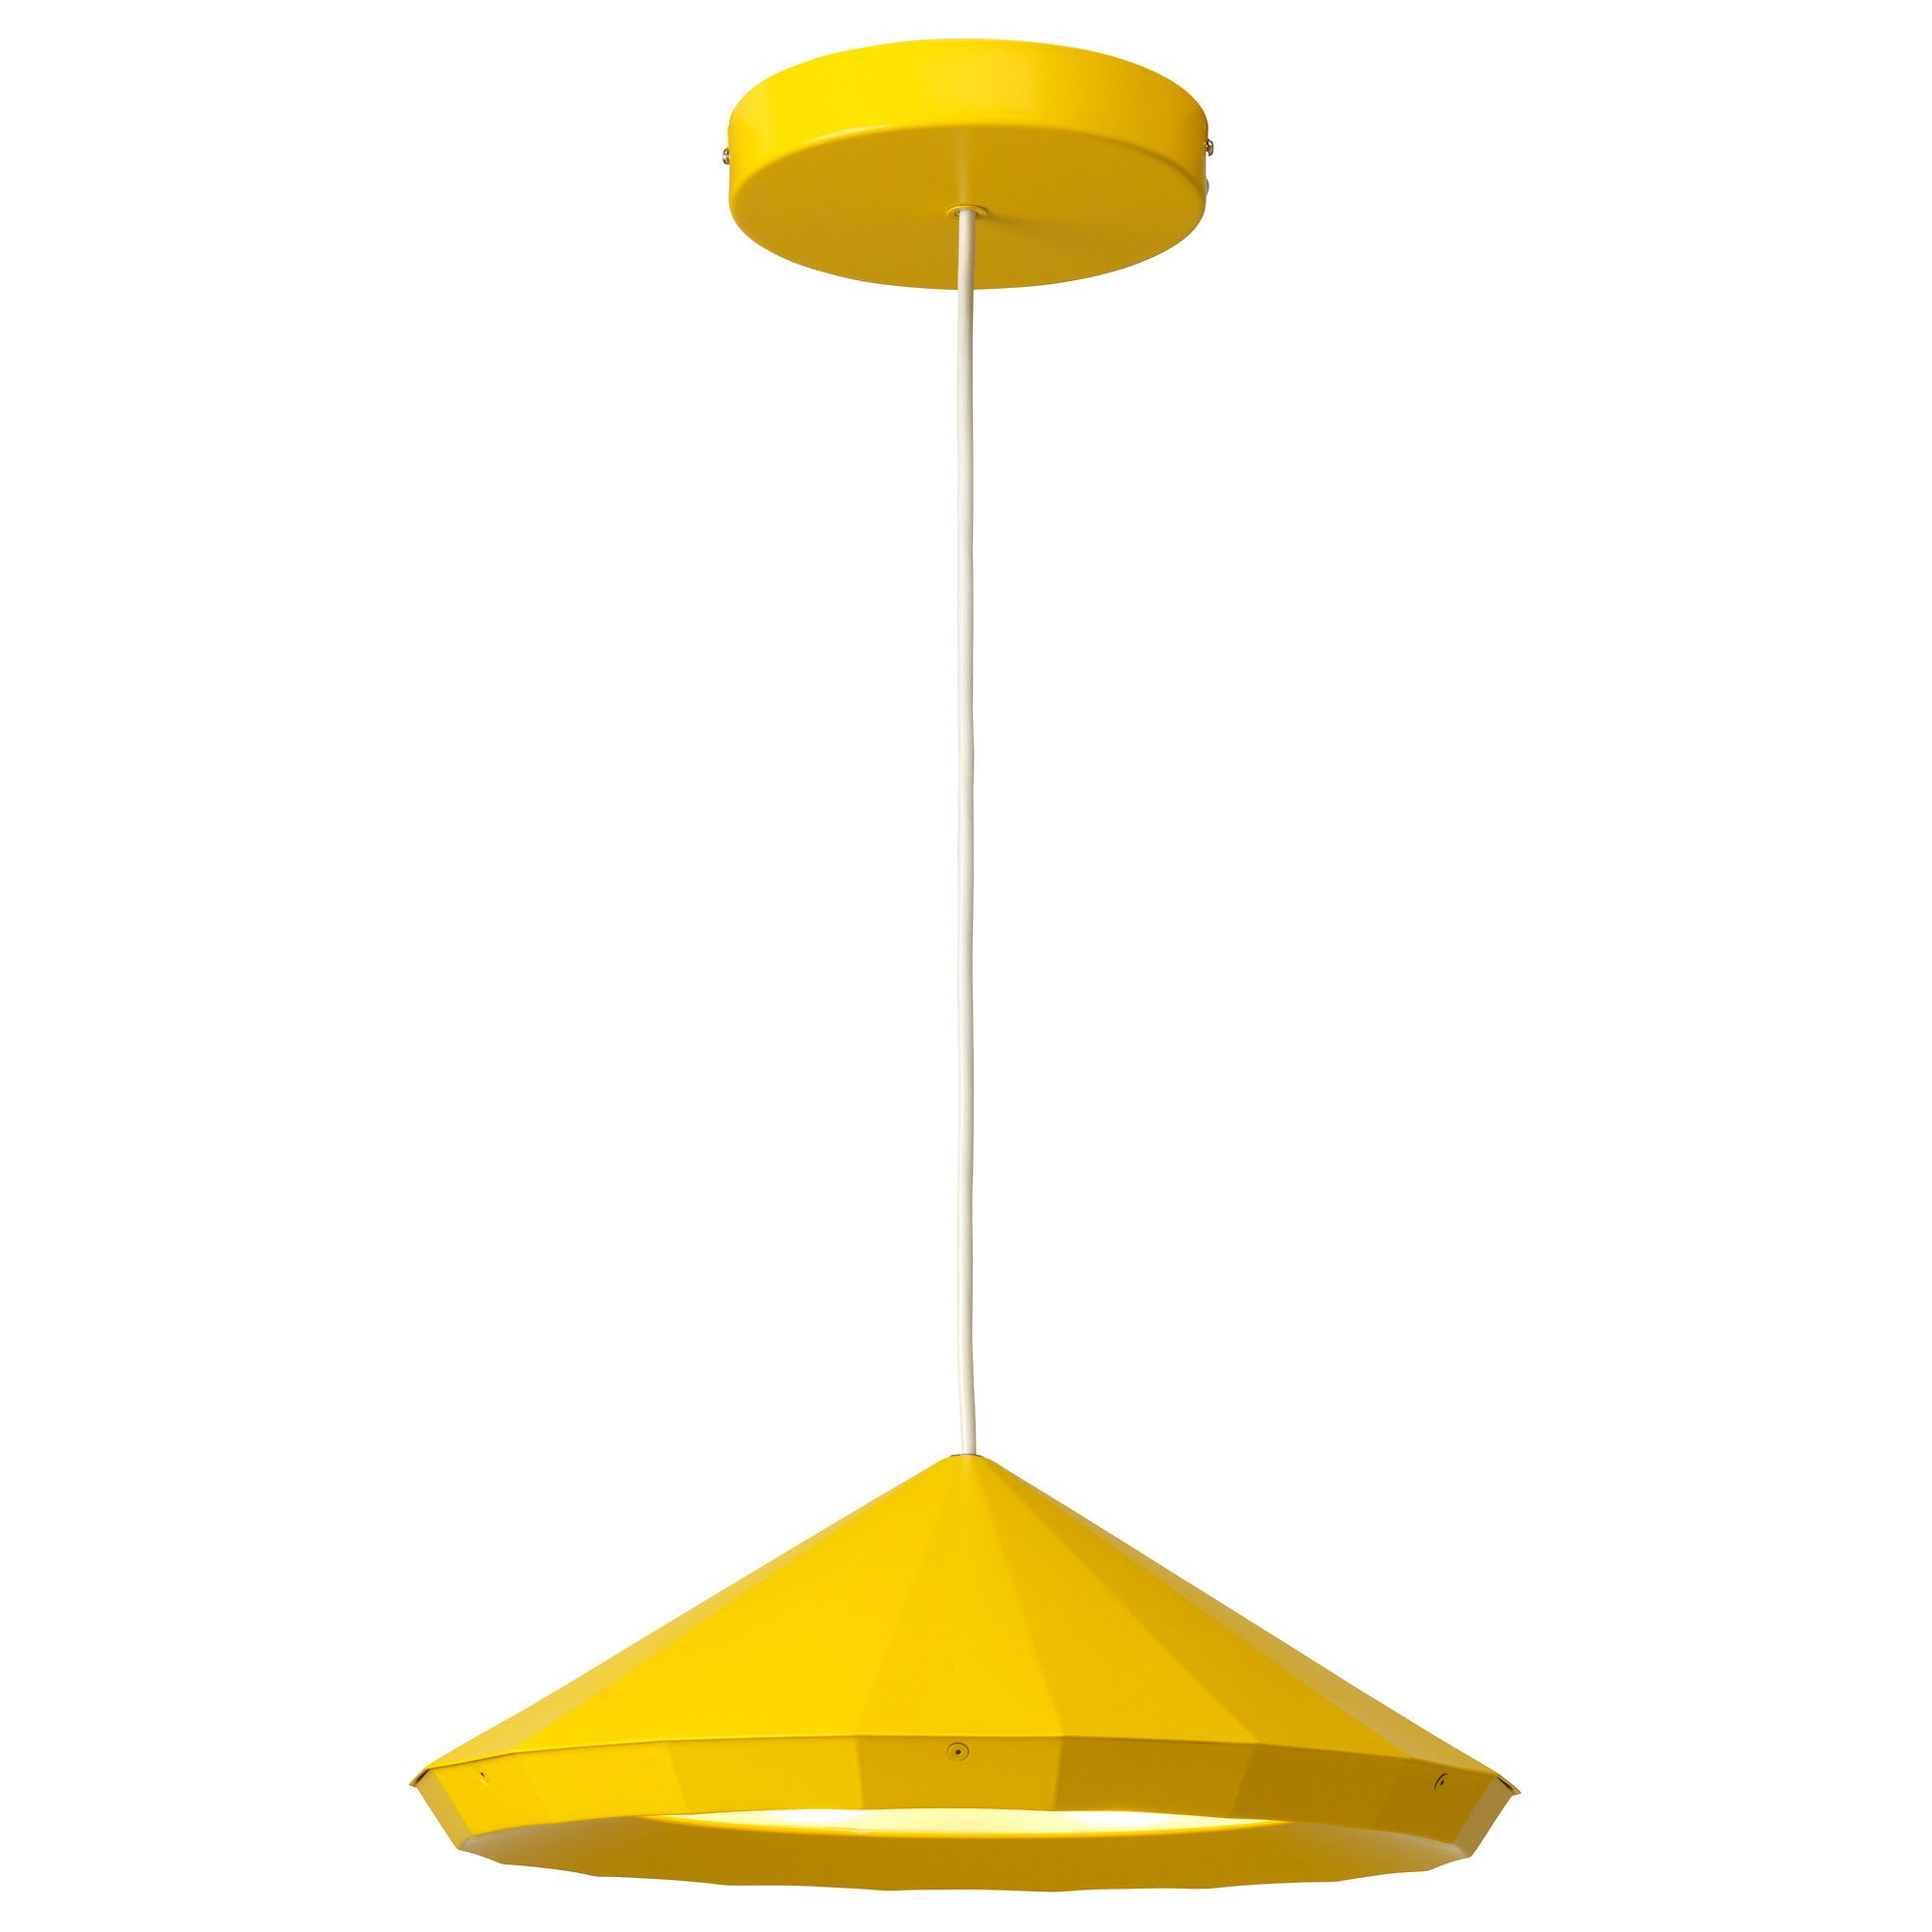 Ikea Ps Lamp Ikea Ps 2012 Led Pendant Lamp Yellow Also Available In